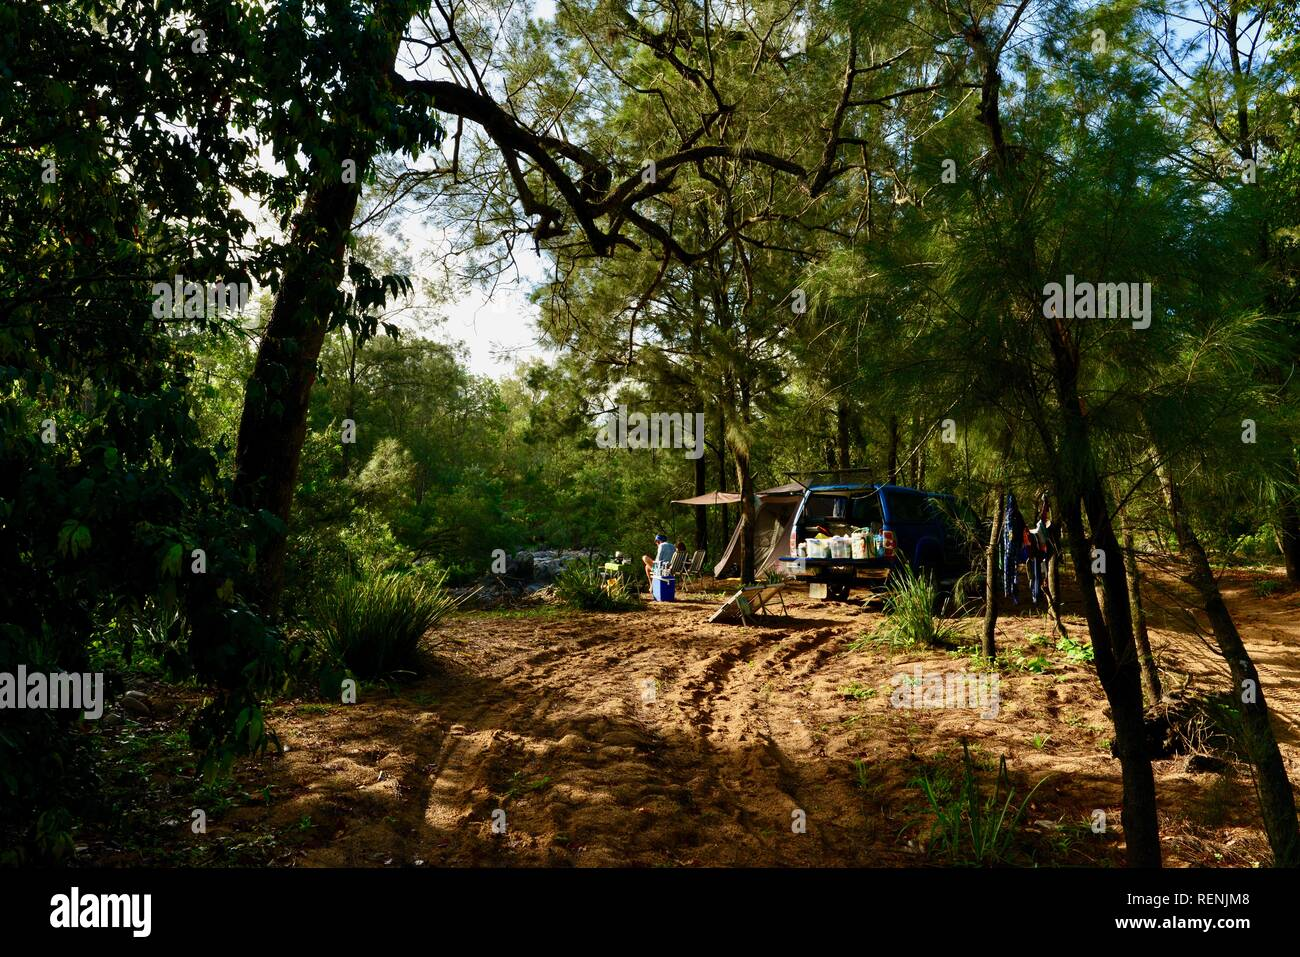 Camping next to Teemburra Creek at Captain's crossing, Mia Mia State Forest, Queensland, Australia - Stock Image